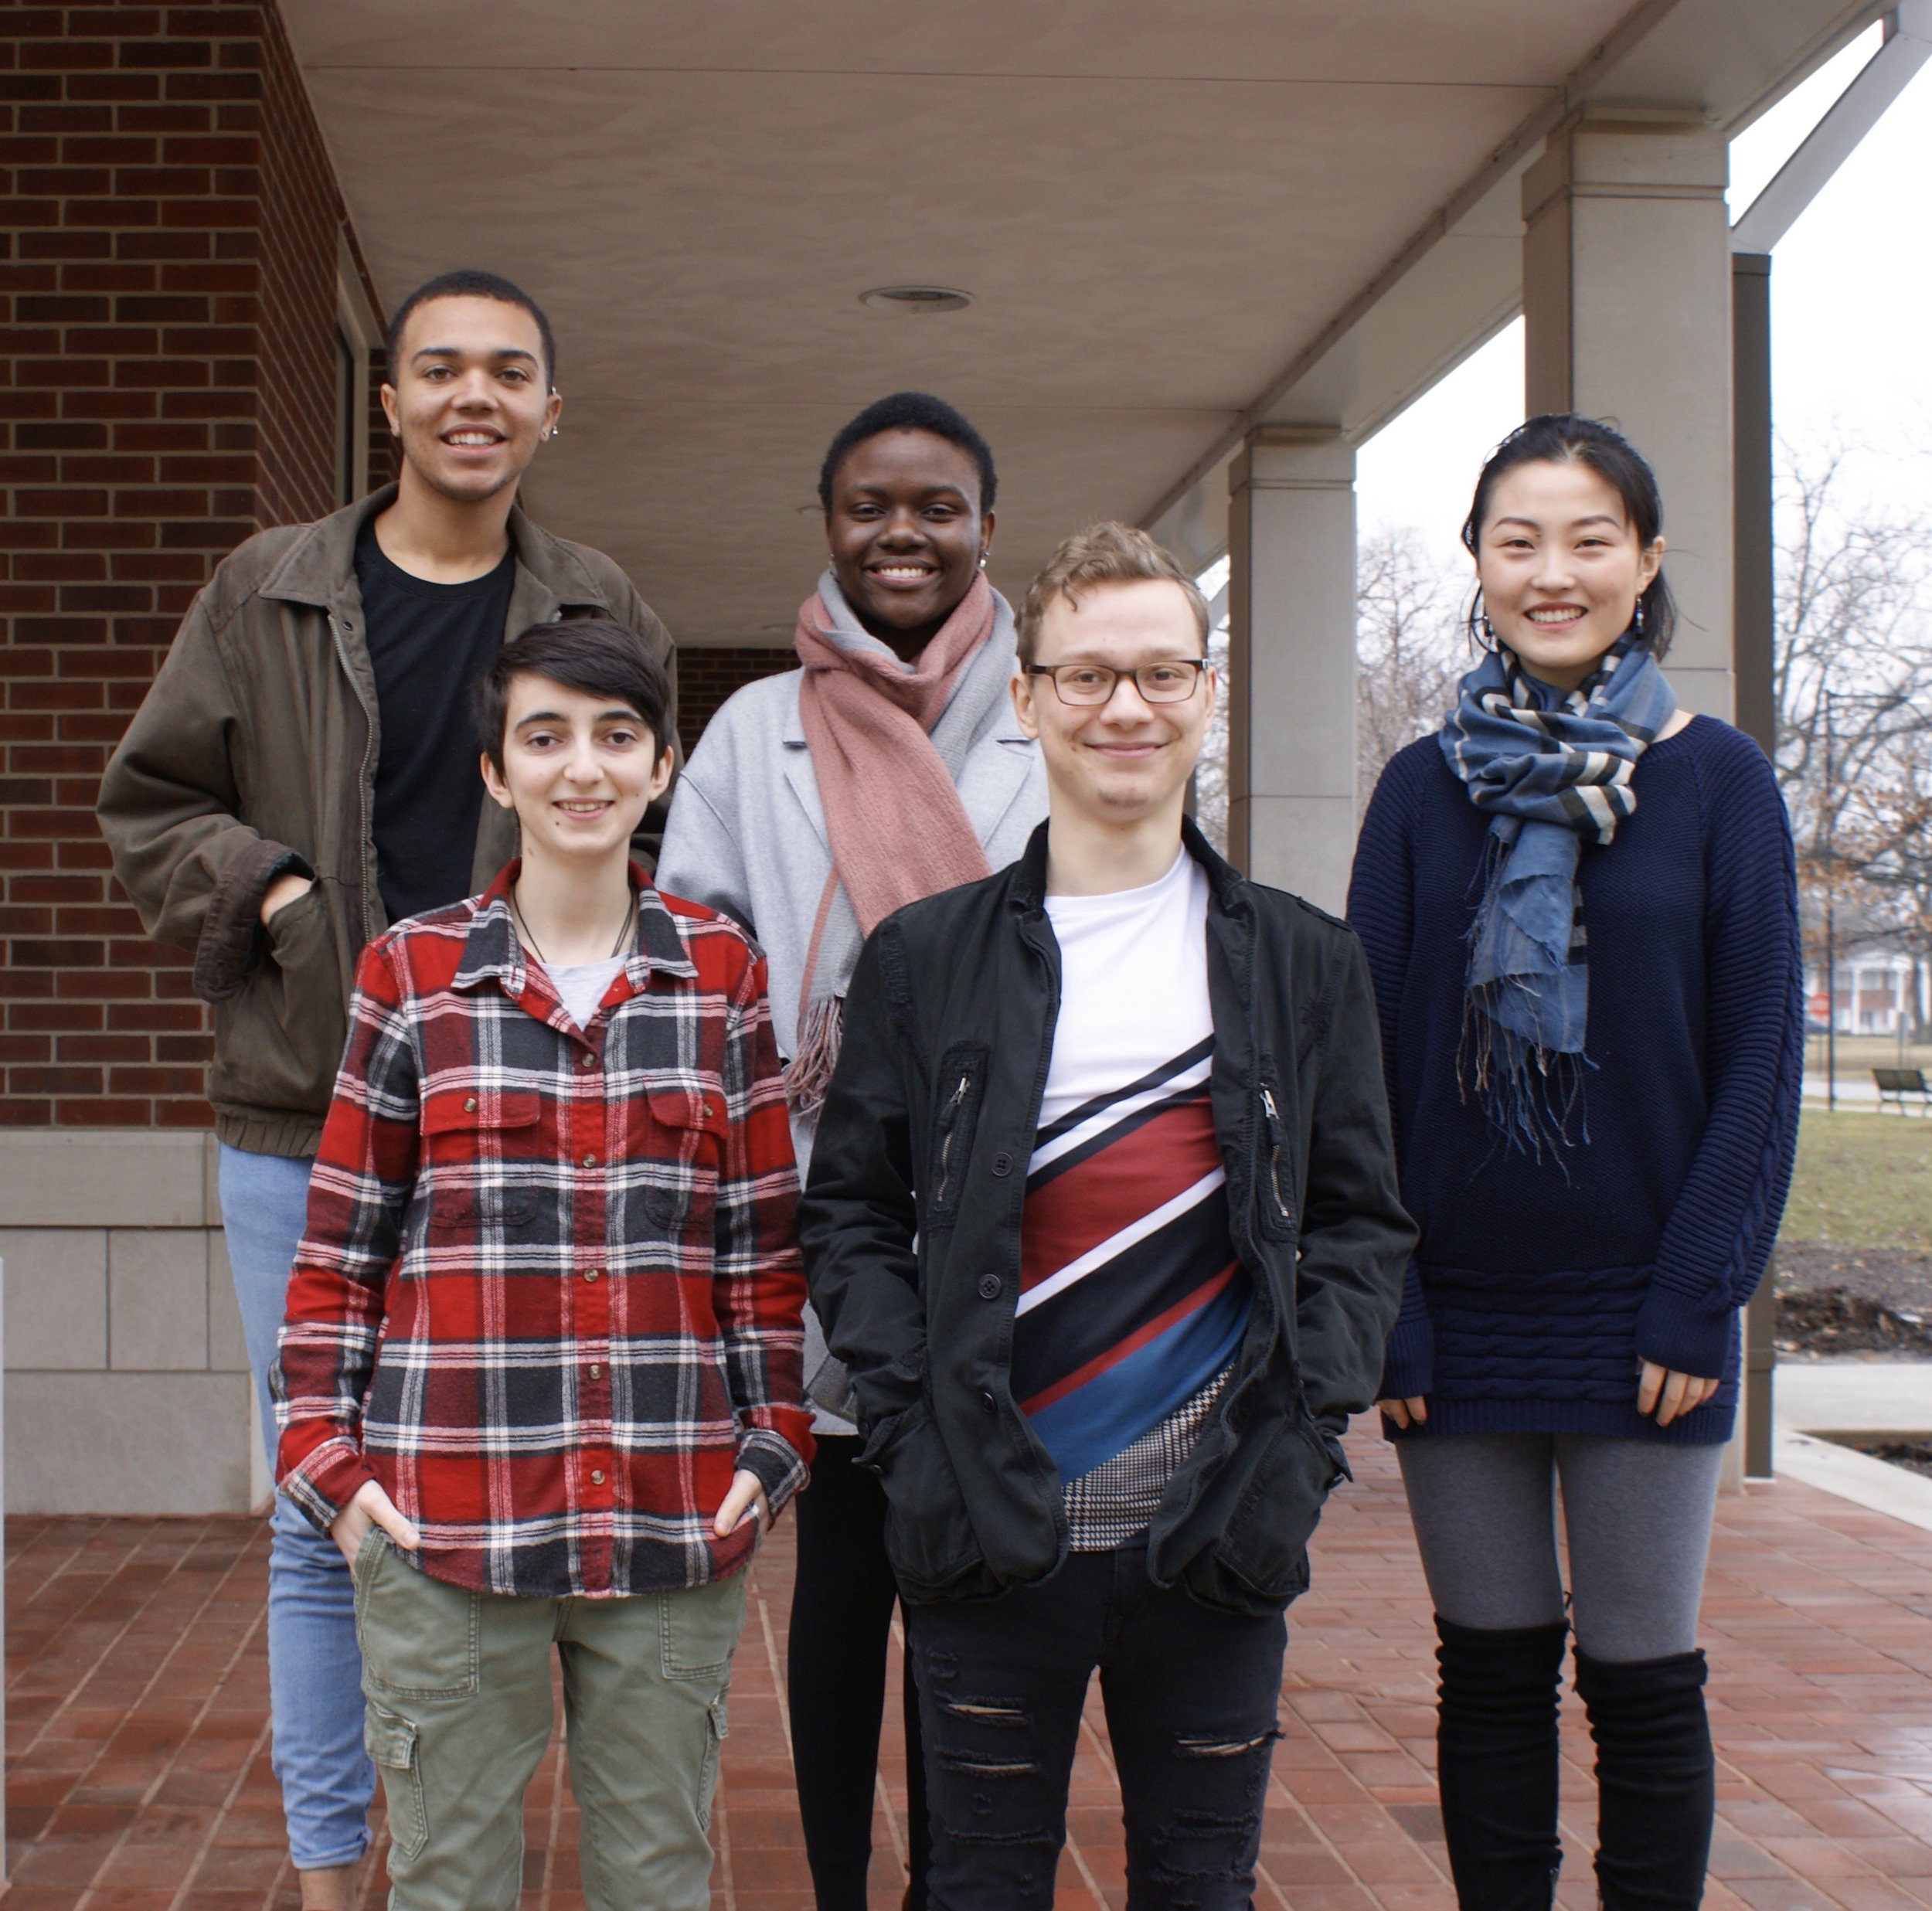 Spring 2019:  (Front row, L-R) Thalia Lhatso-Suppan, Ethan Perkins; (Back row, L-R) Tyrique Richardson, Leticia Maganga (Lab Manager), Xuechen Zhang